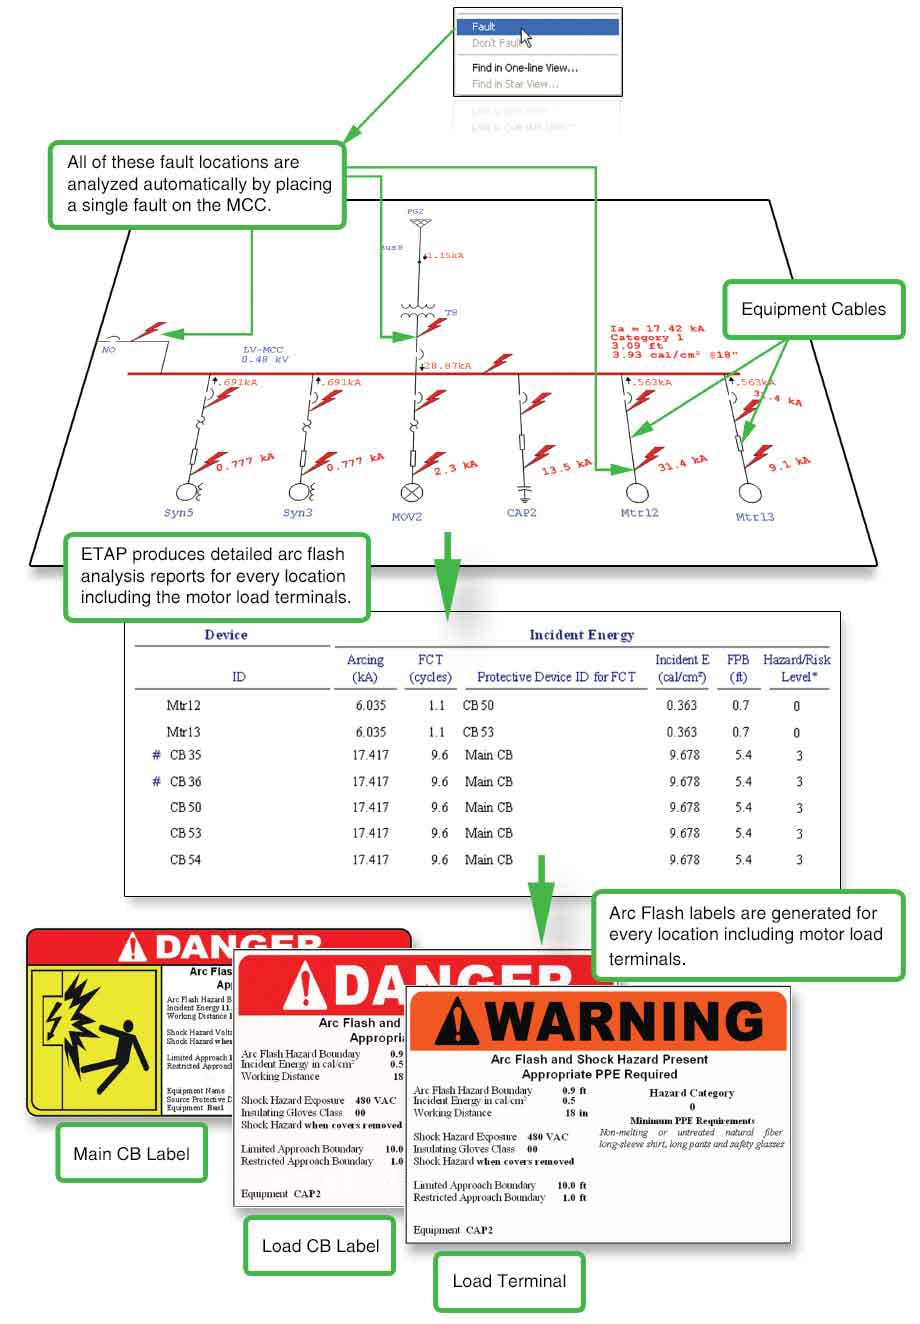 Complete study for Arc Flash showing faulted protective equipment, detailed arc flash reports, and printable arc flash labels